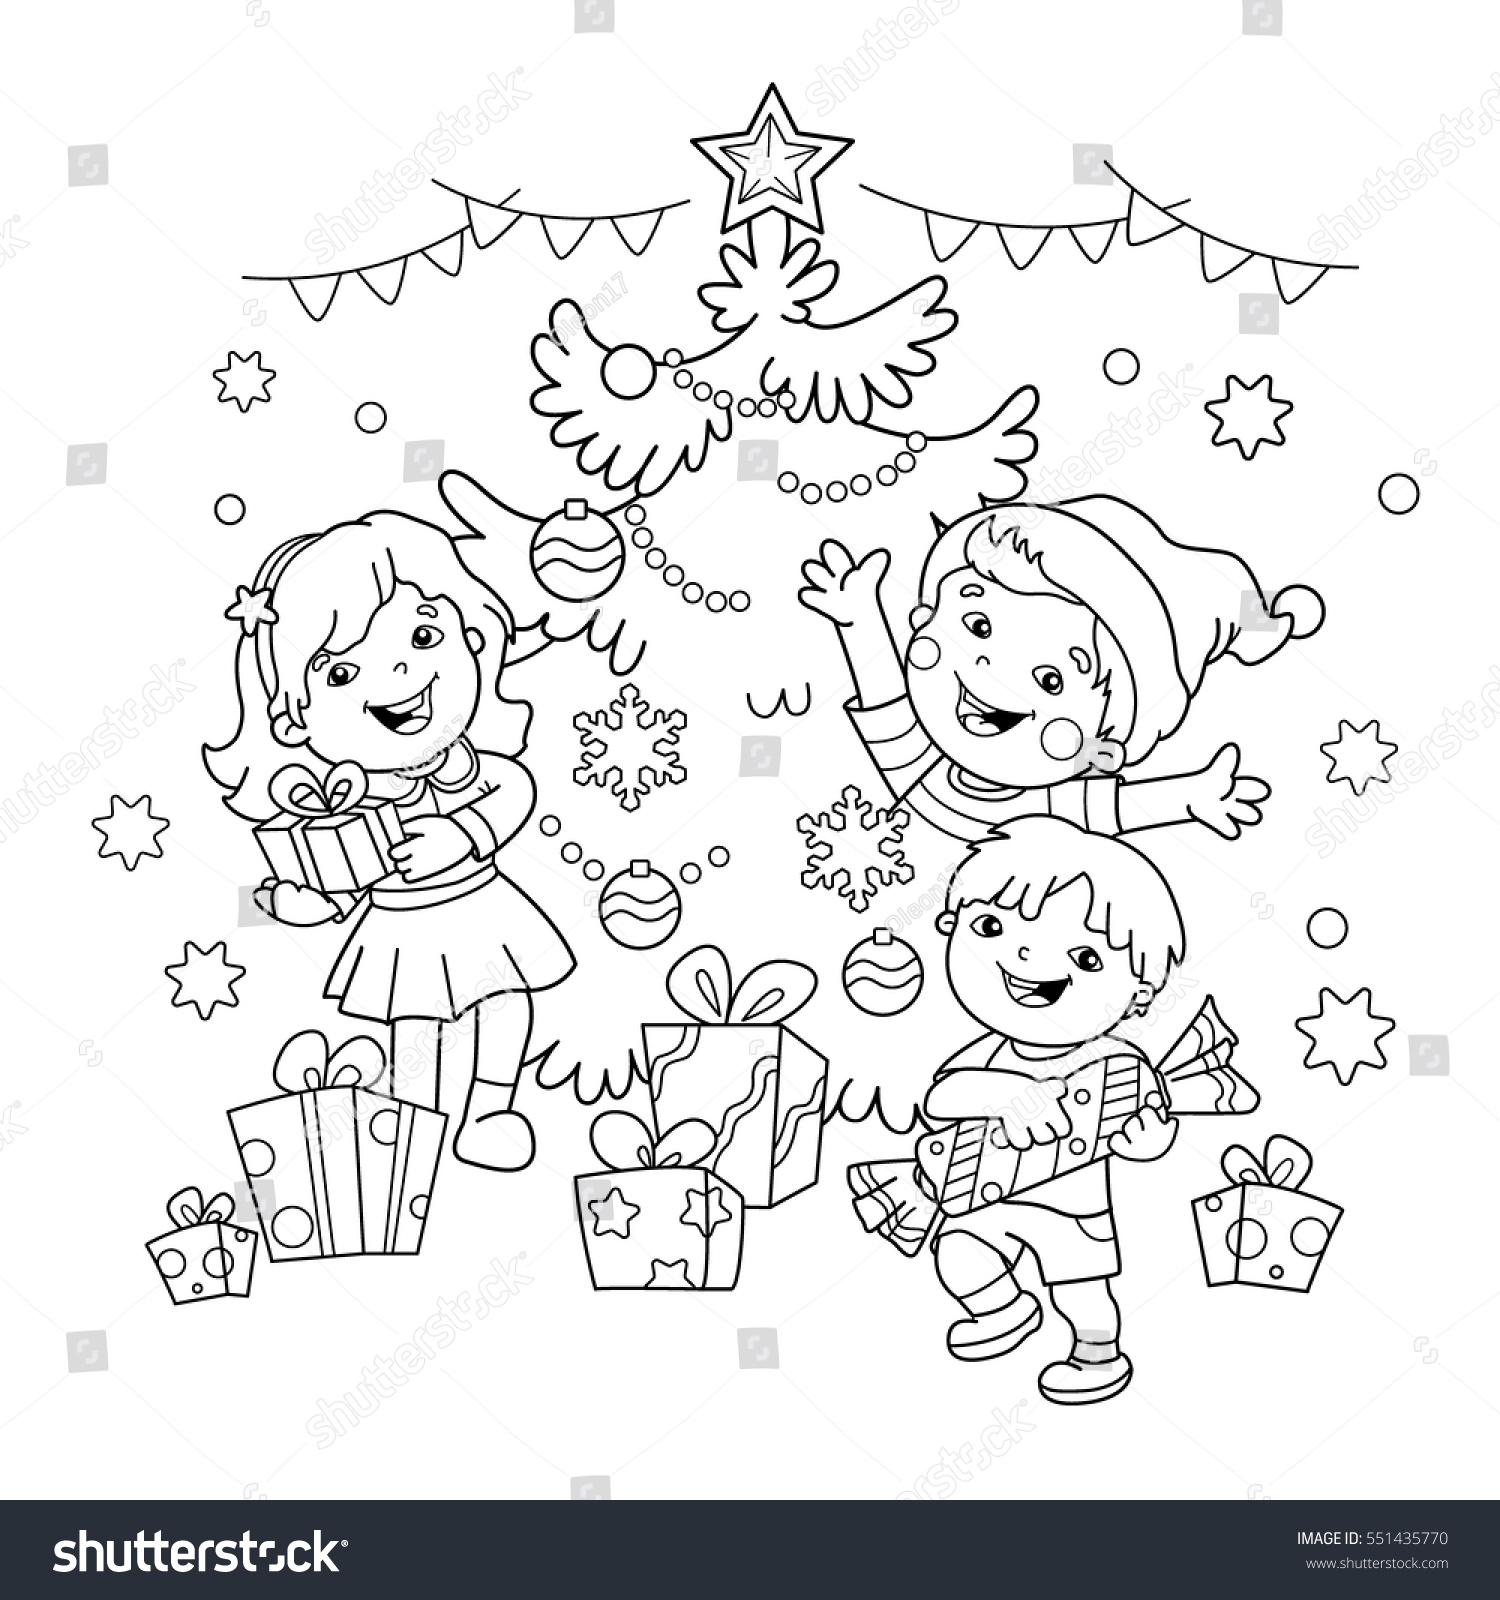 Coloring Page Outline Children Gifts Christmas Stock Vector